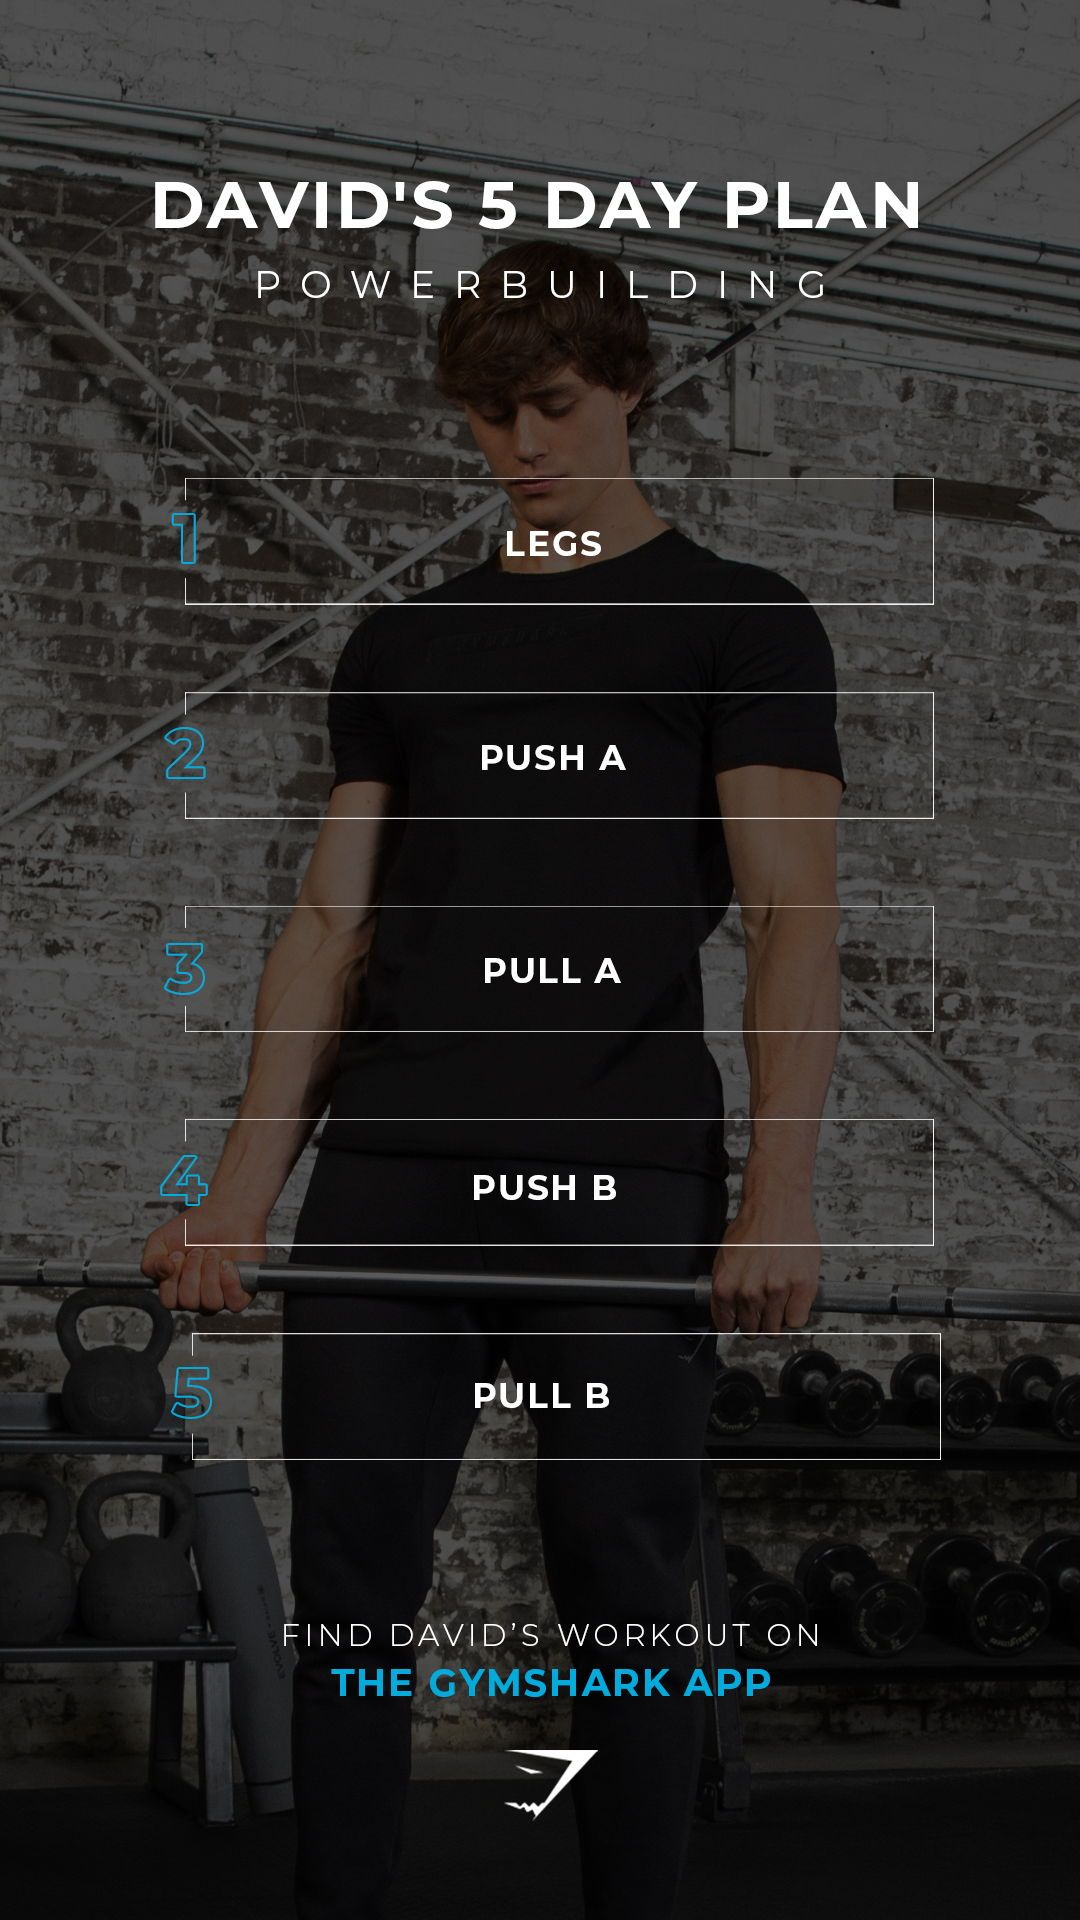 David's 5 Day Plan, powerbuilding. Train with David on the